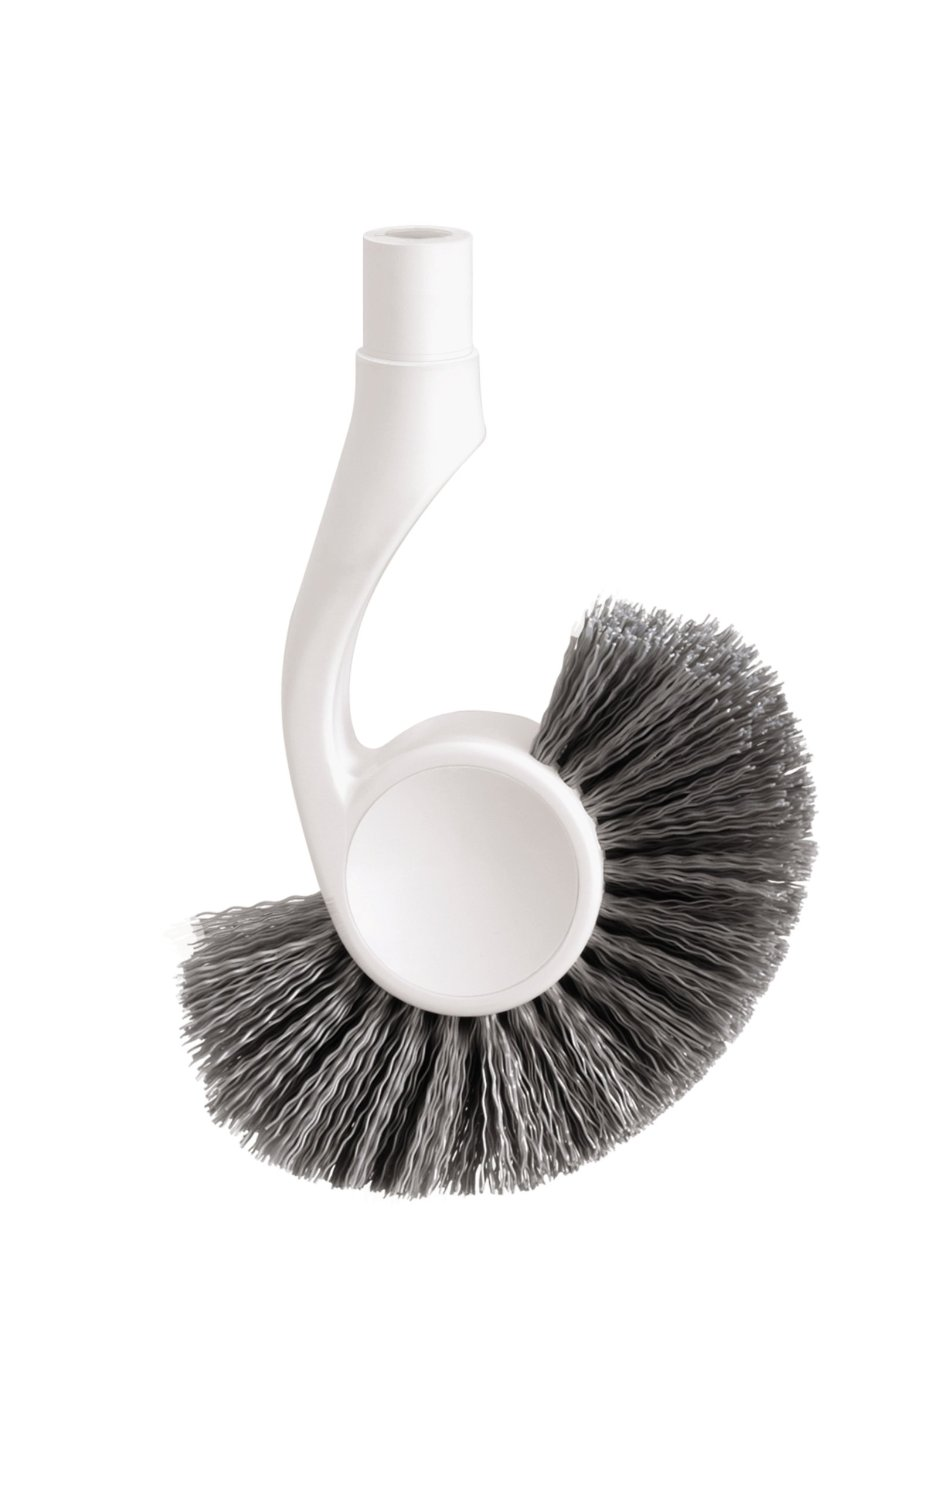 Cheap Toilet Brush Replacement Head, find Toilet Brush Replacement ...